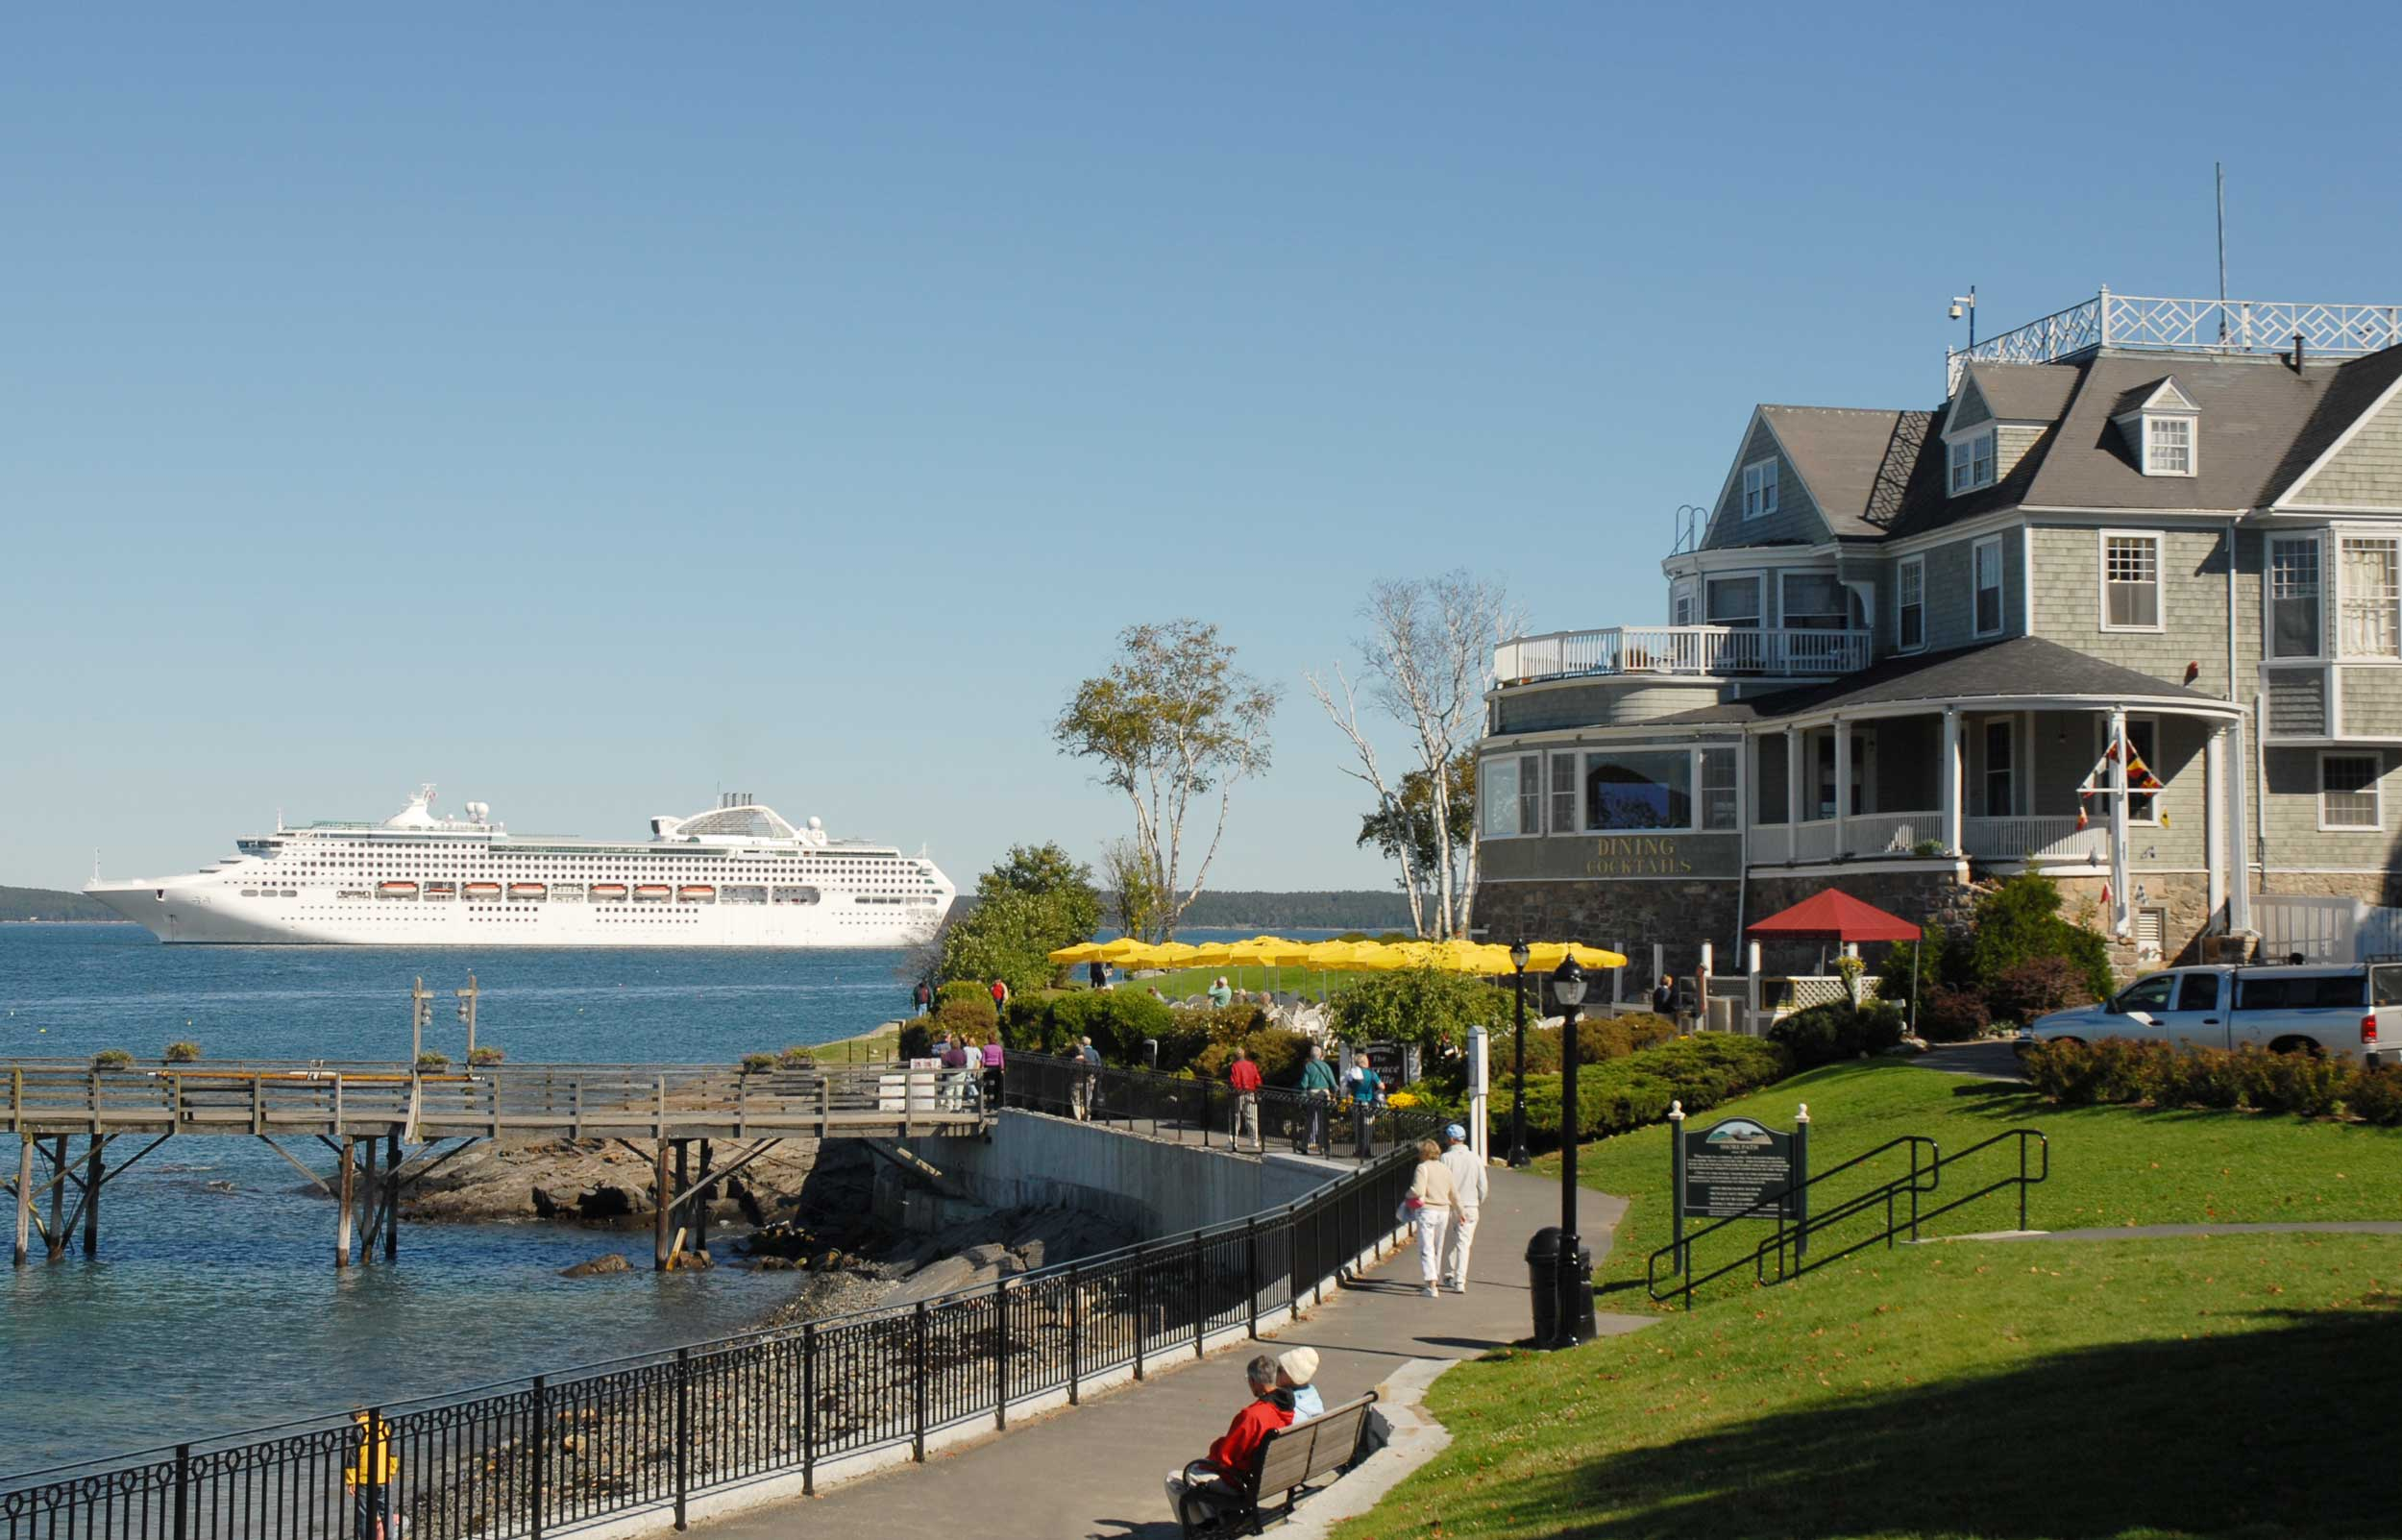 People walking and seated along a path by the shore, with a historical building and cruise ship in the background, Bar Harbor